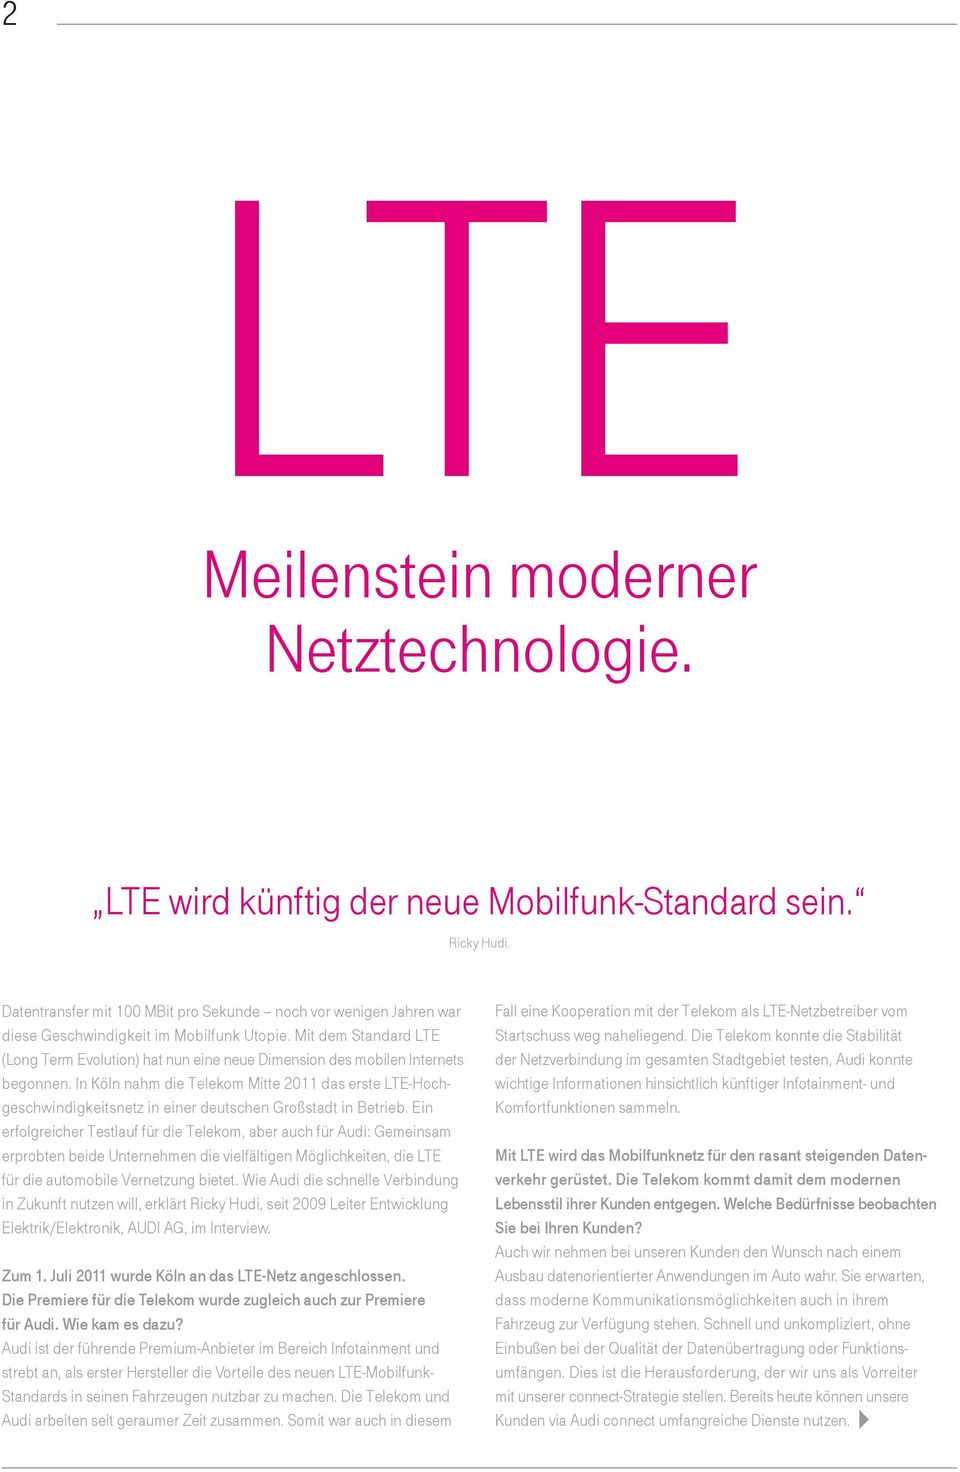 Mit dem Standard LTE (Long Term Evolution) hat nun eine neue Dimension des mobilen Internets begonnen.